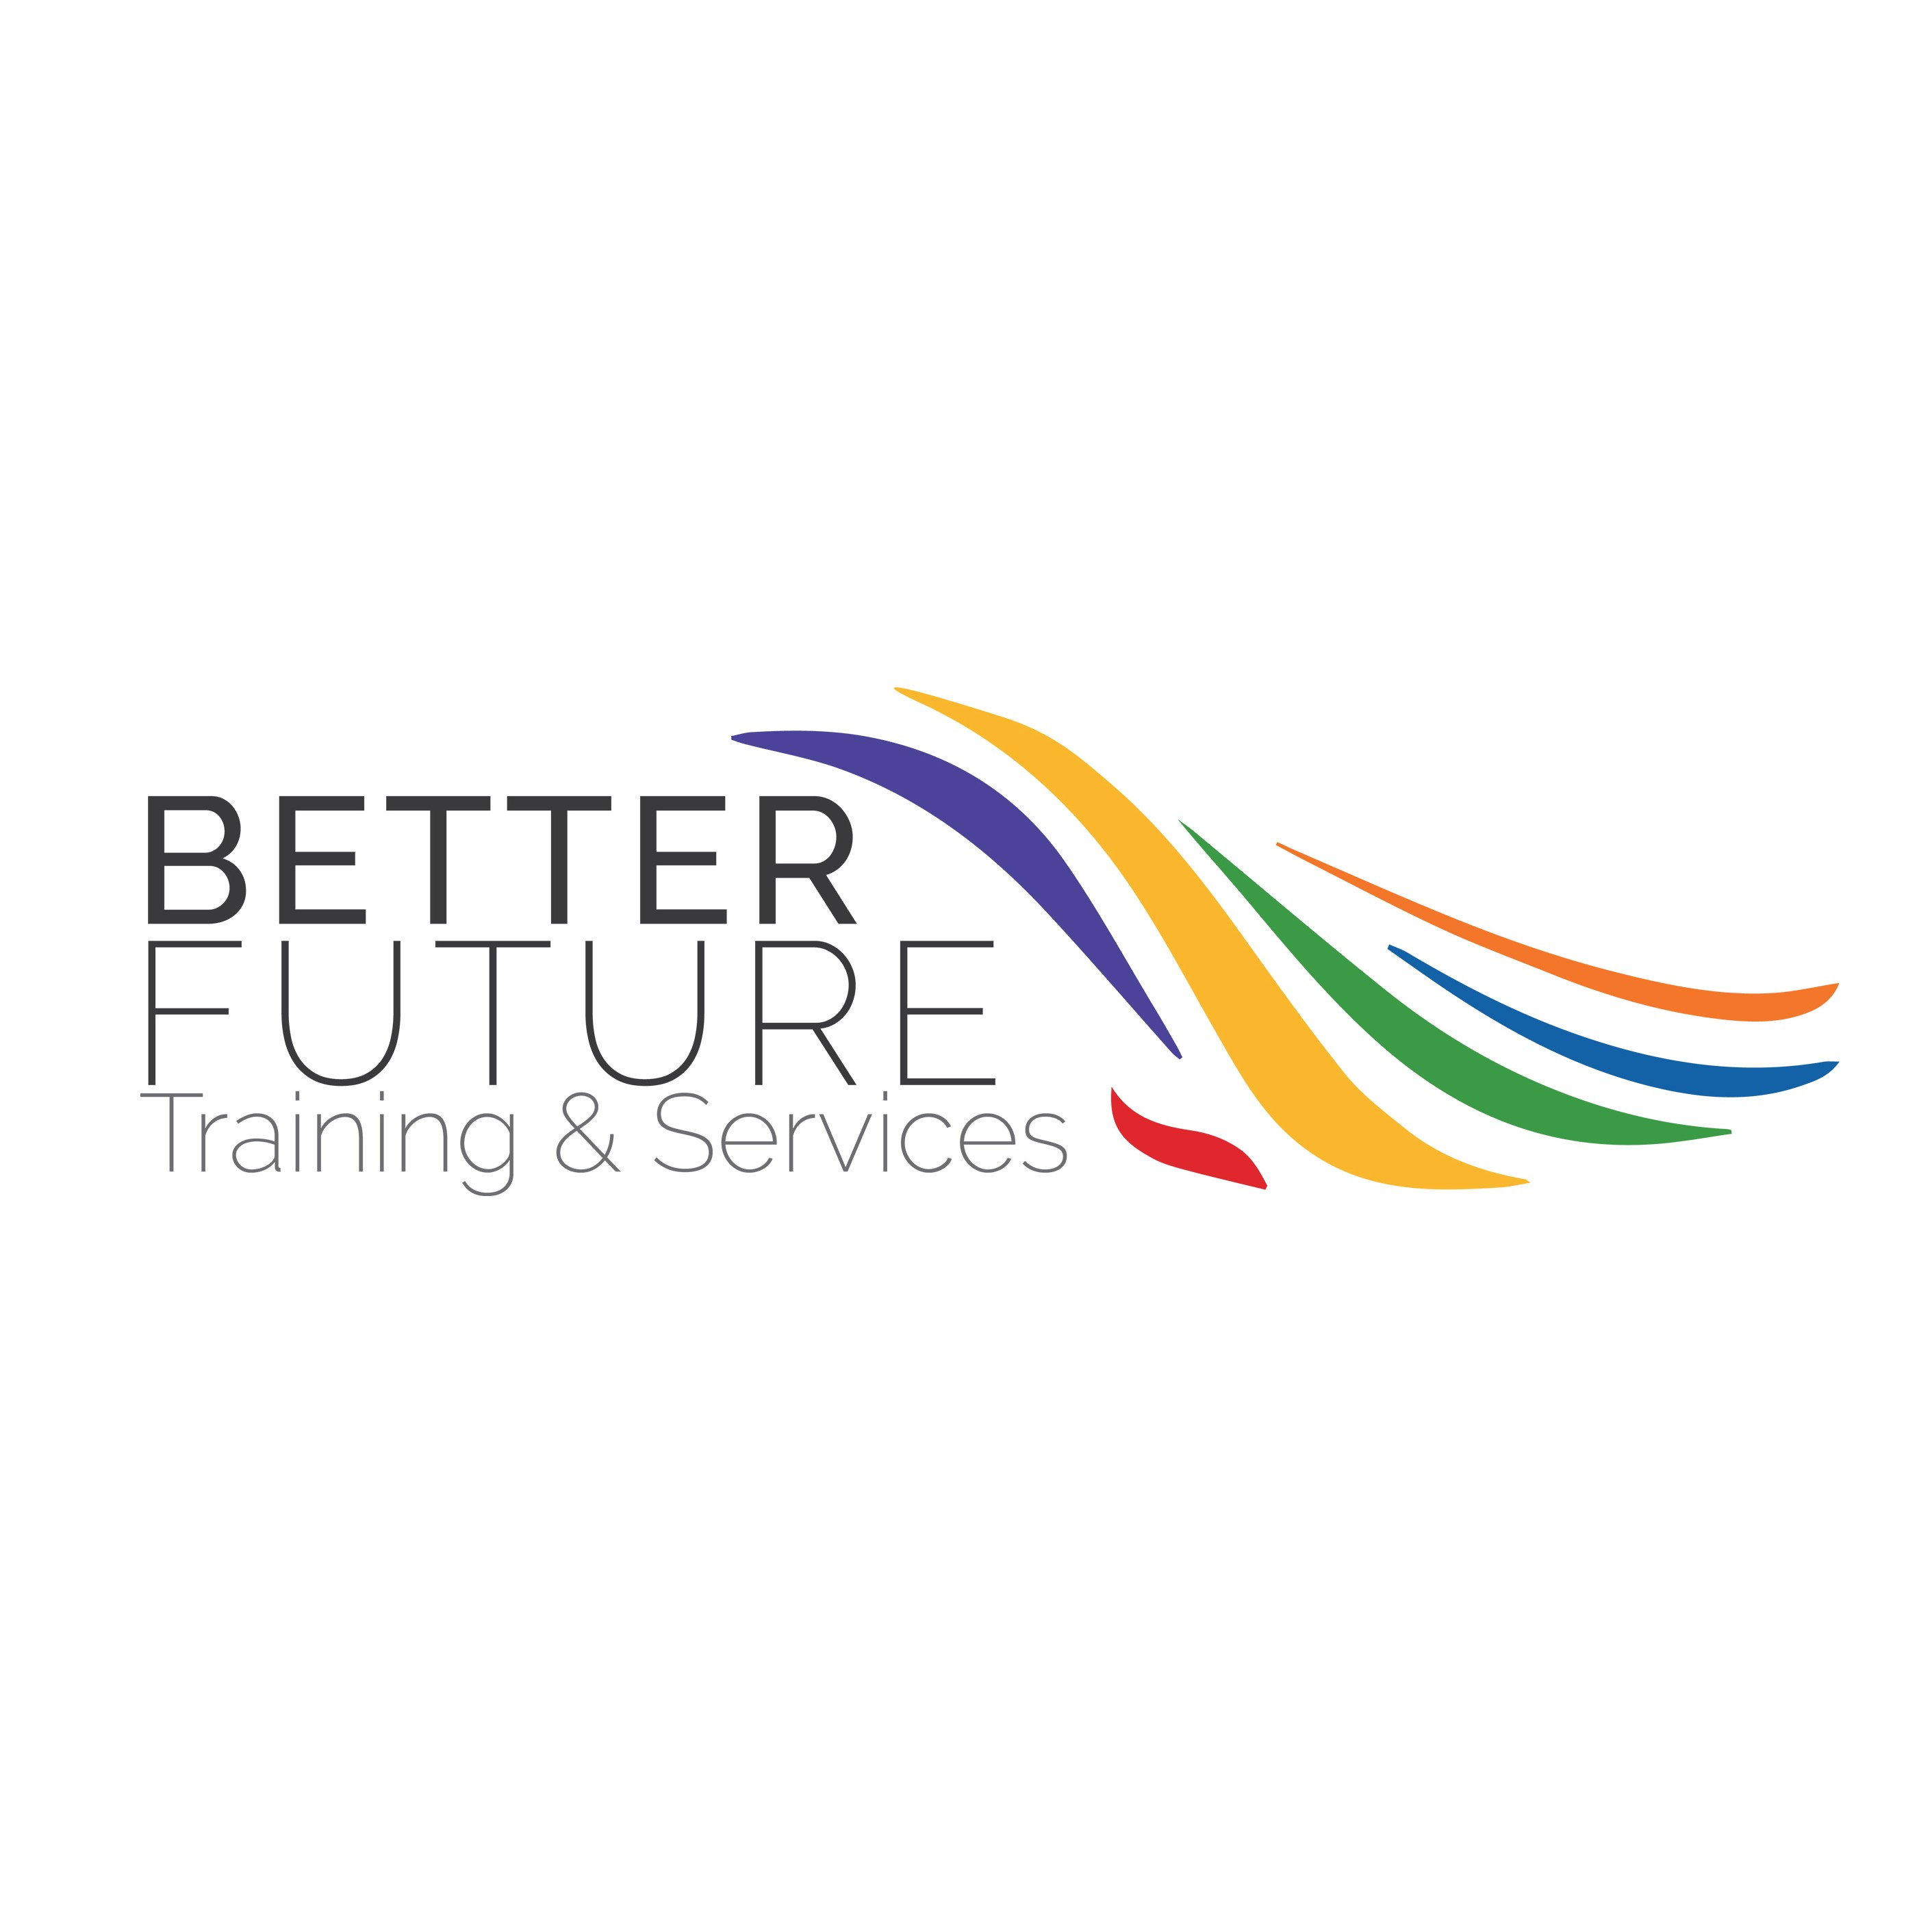 Better Future Training & Service's logo